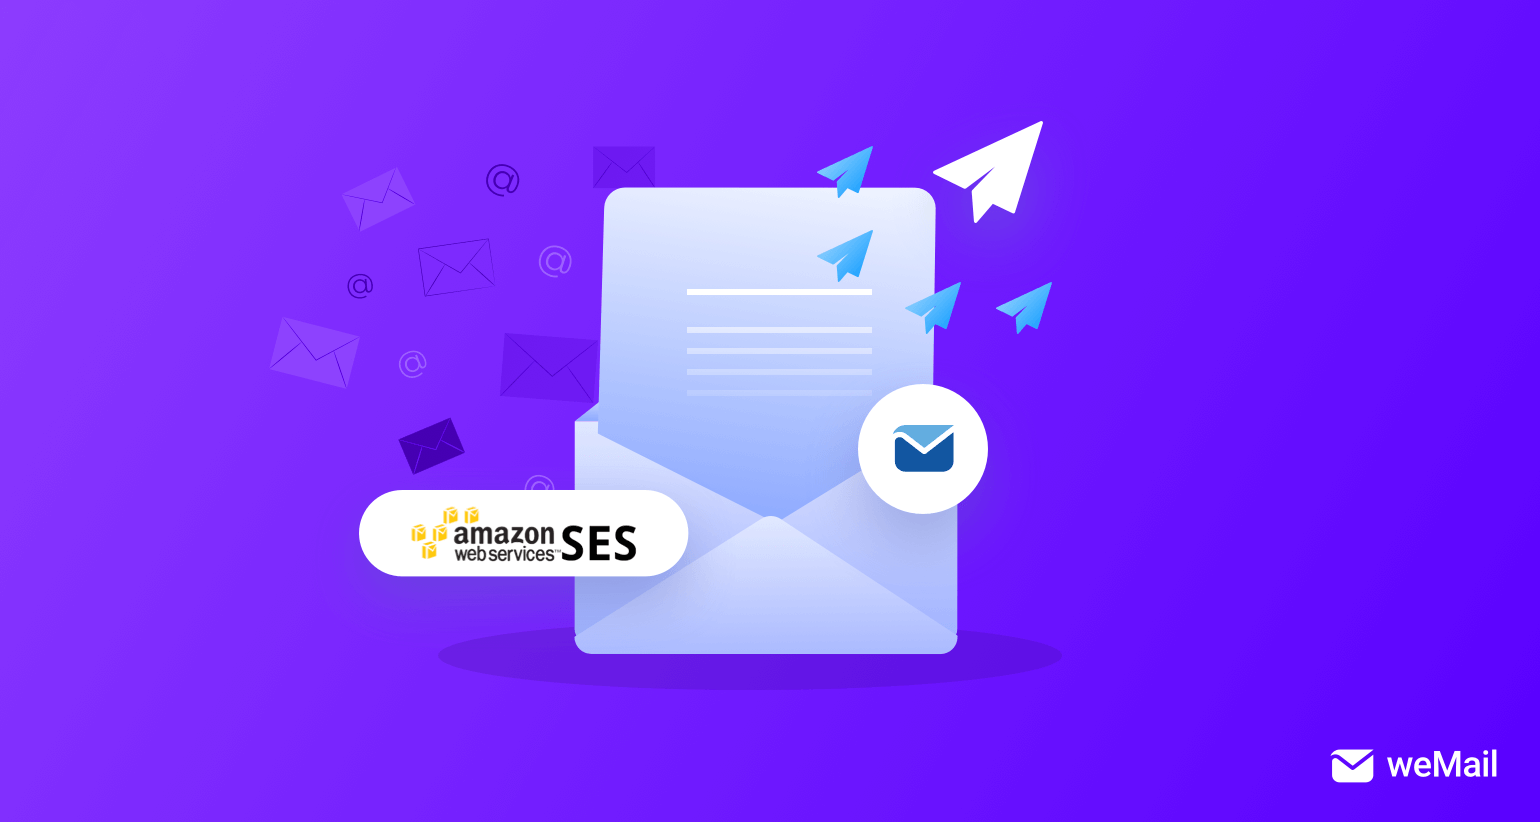 How To Send 62,000 Thousands Free Email With weMail And Amazon SES